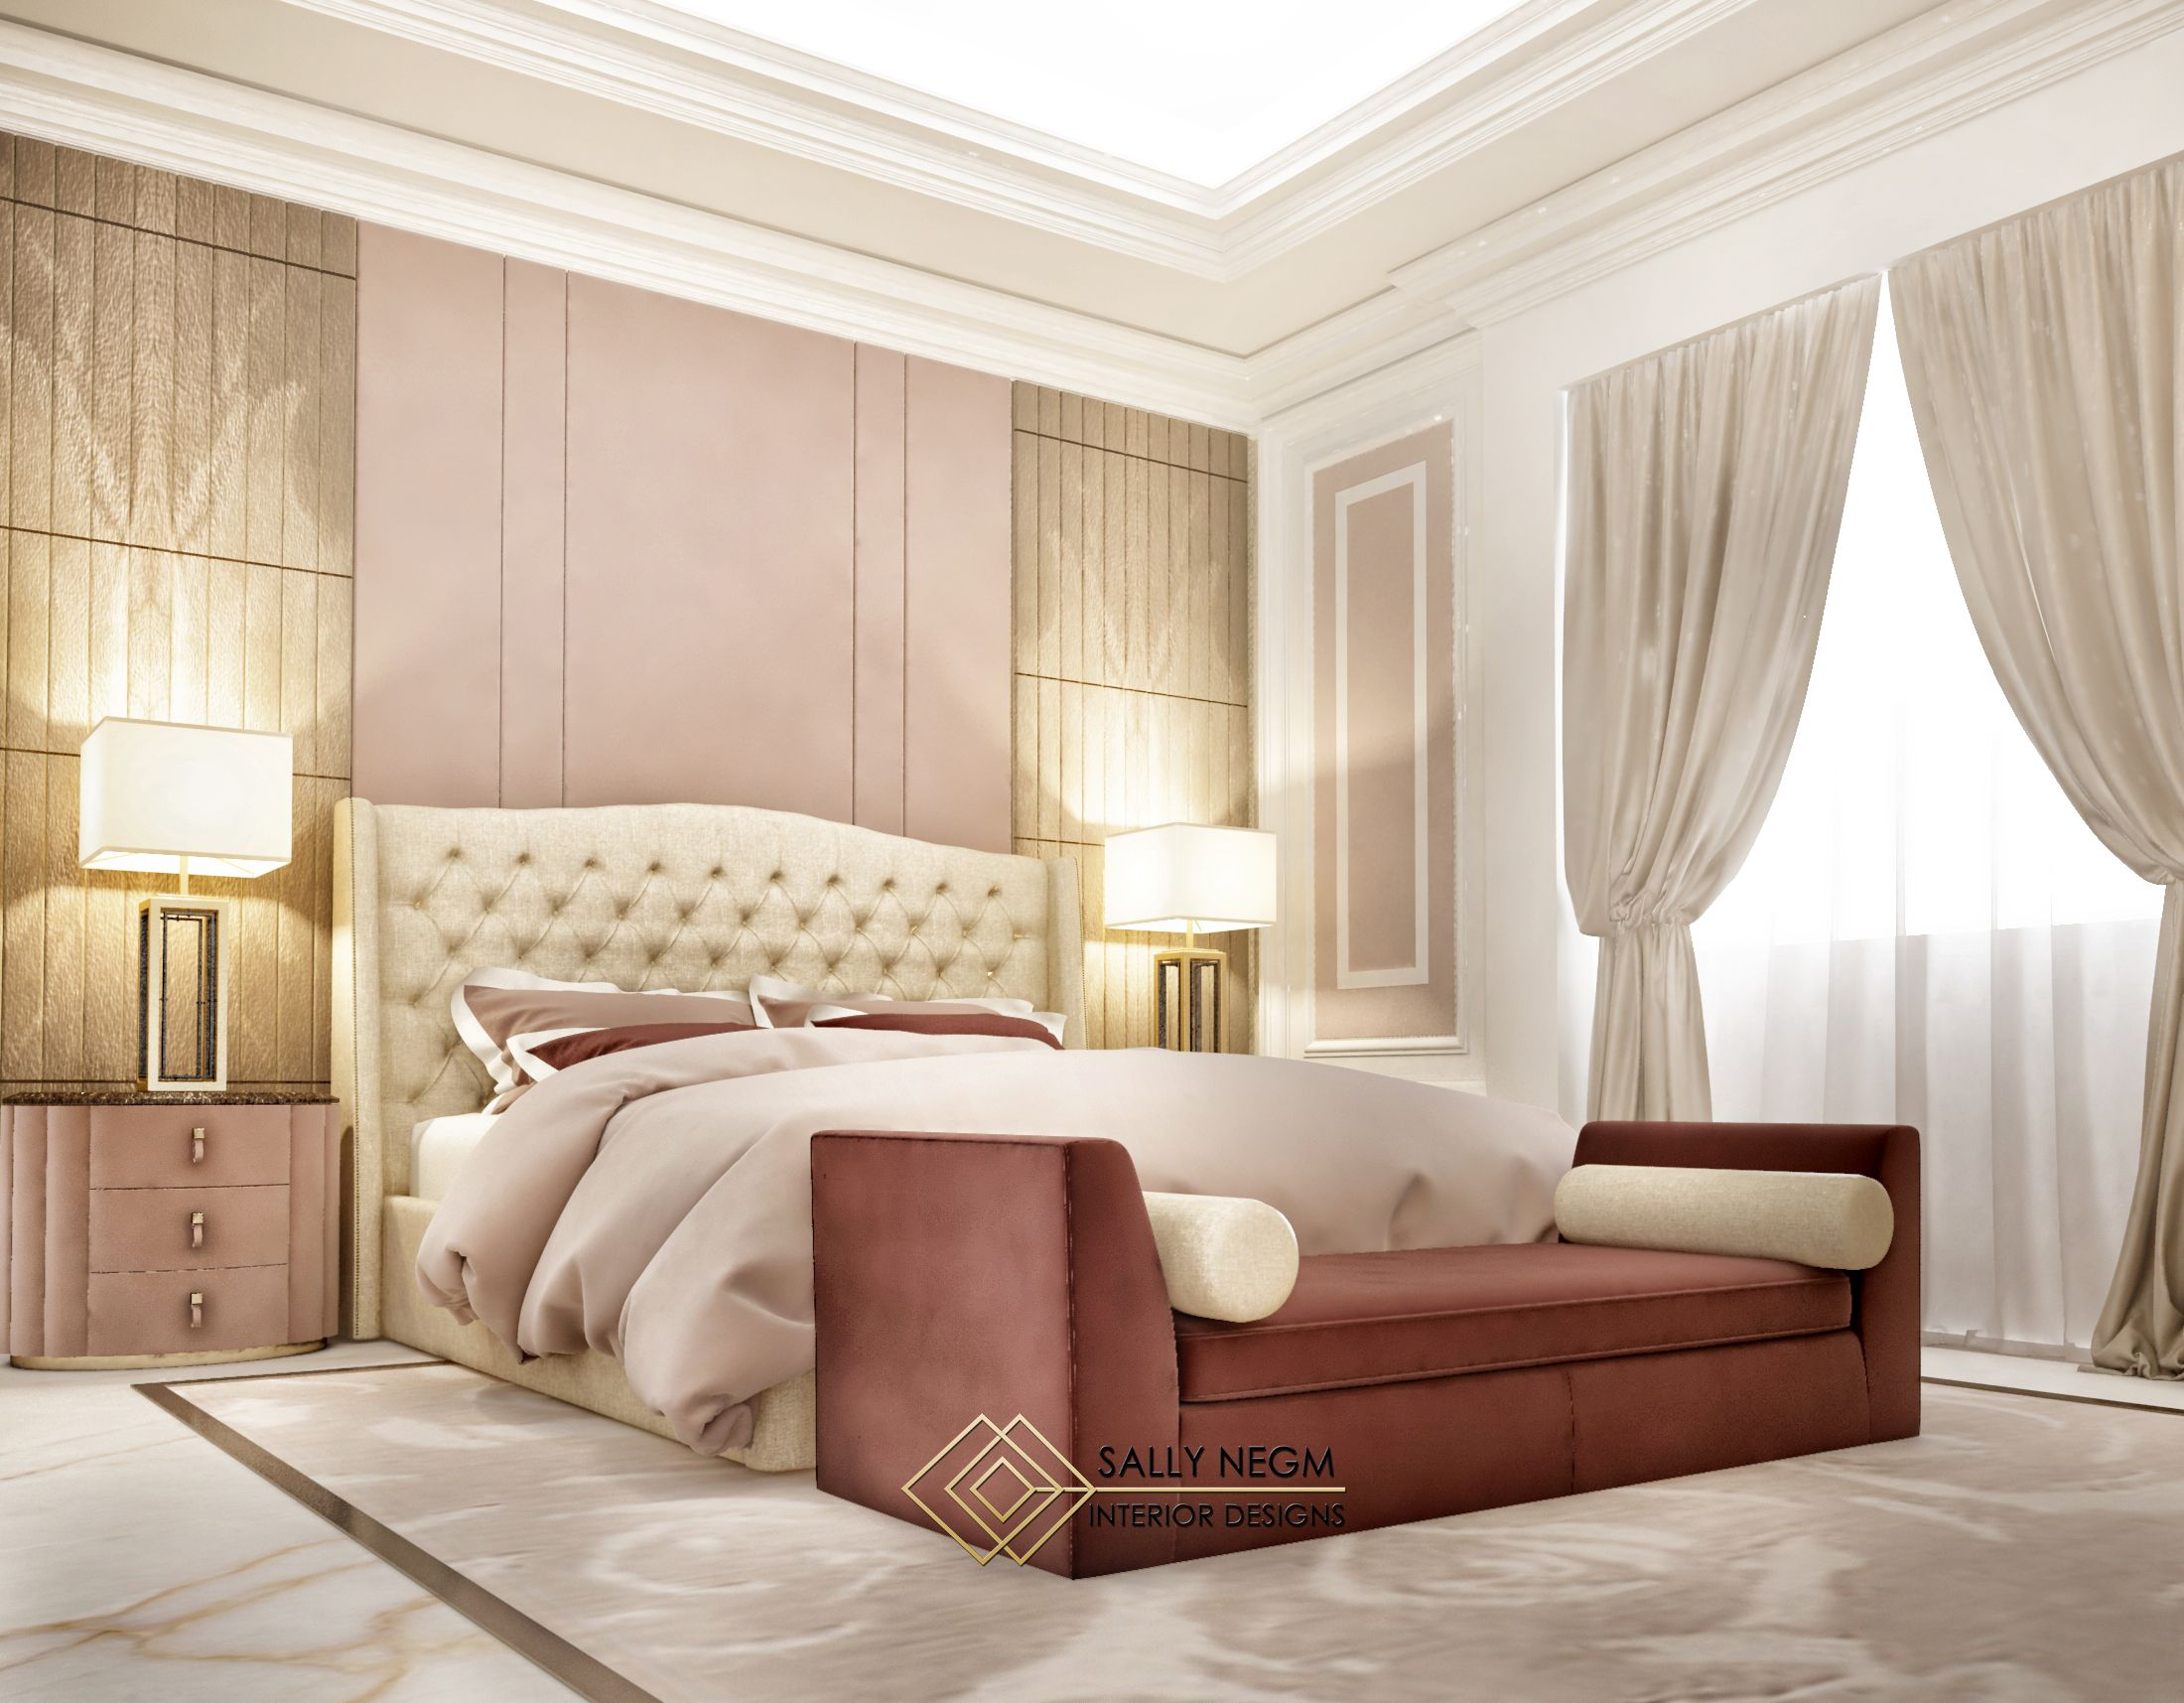 Luxury Modern Master Bedroom Interior Design In Dust Rose With The Bold Golden Shades